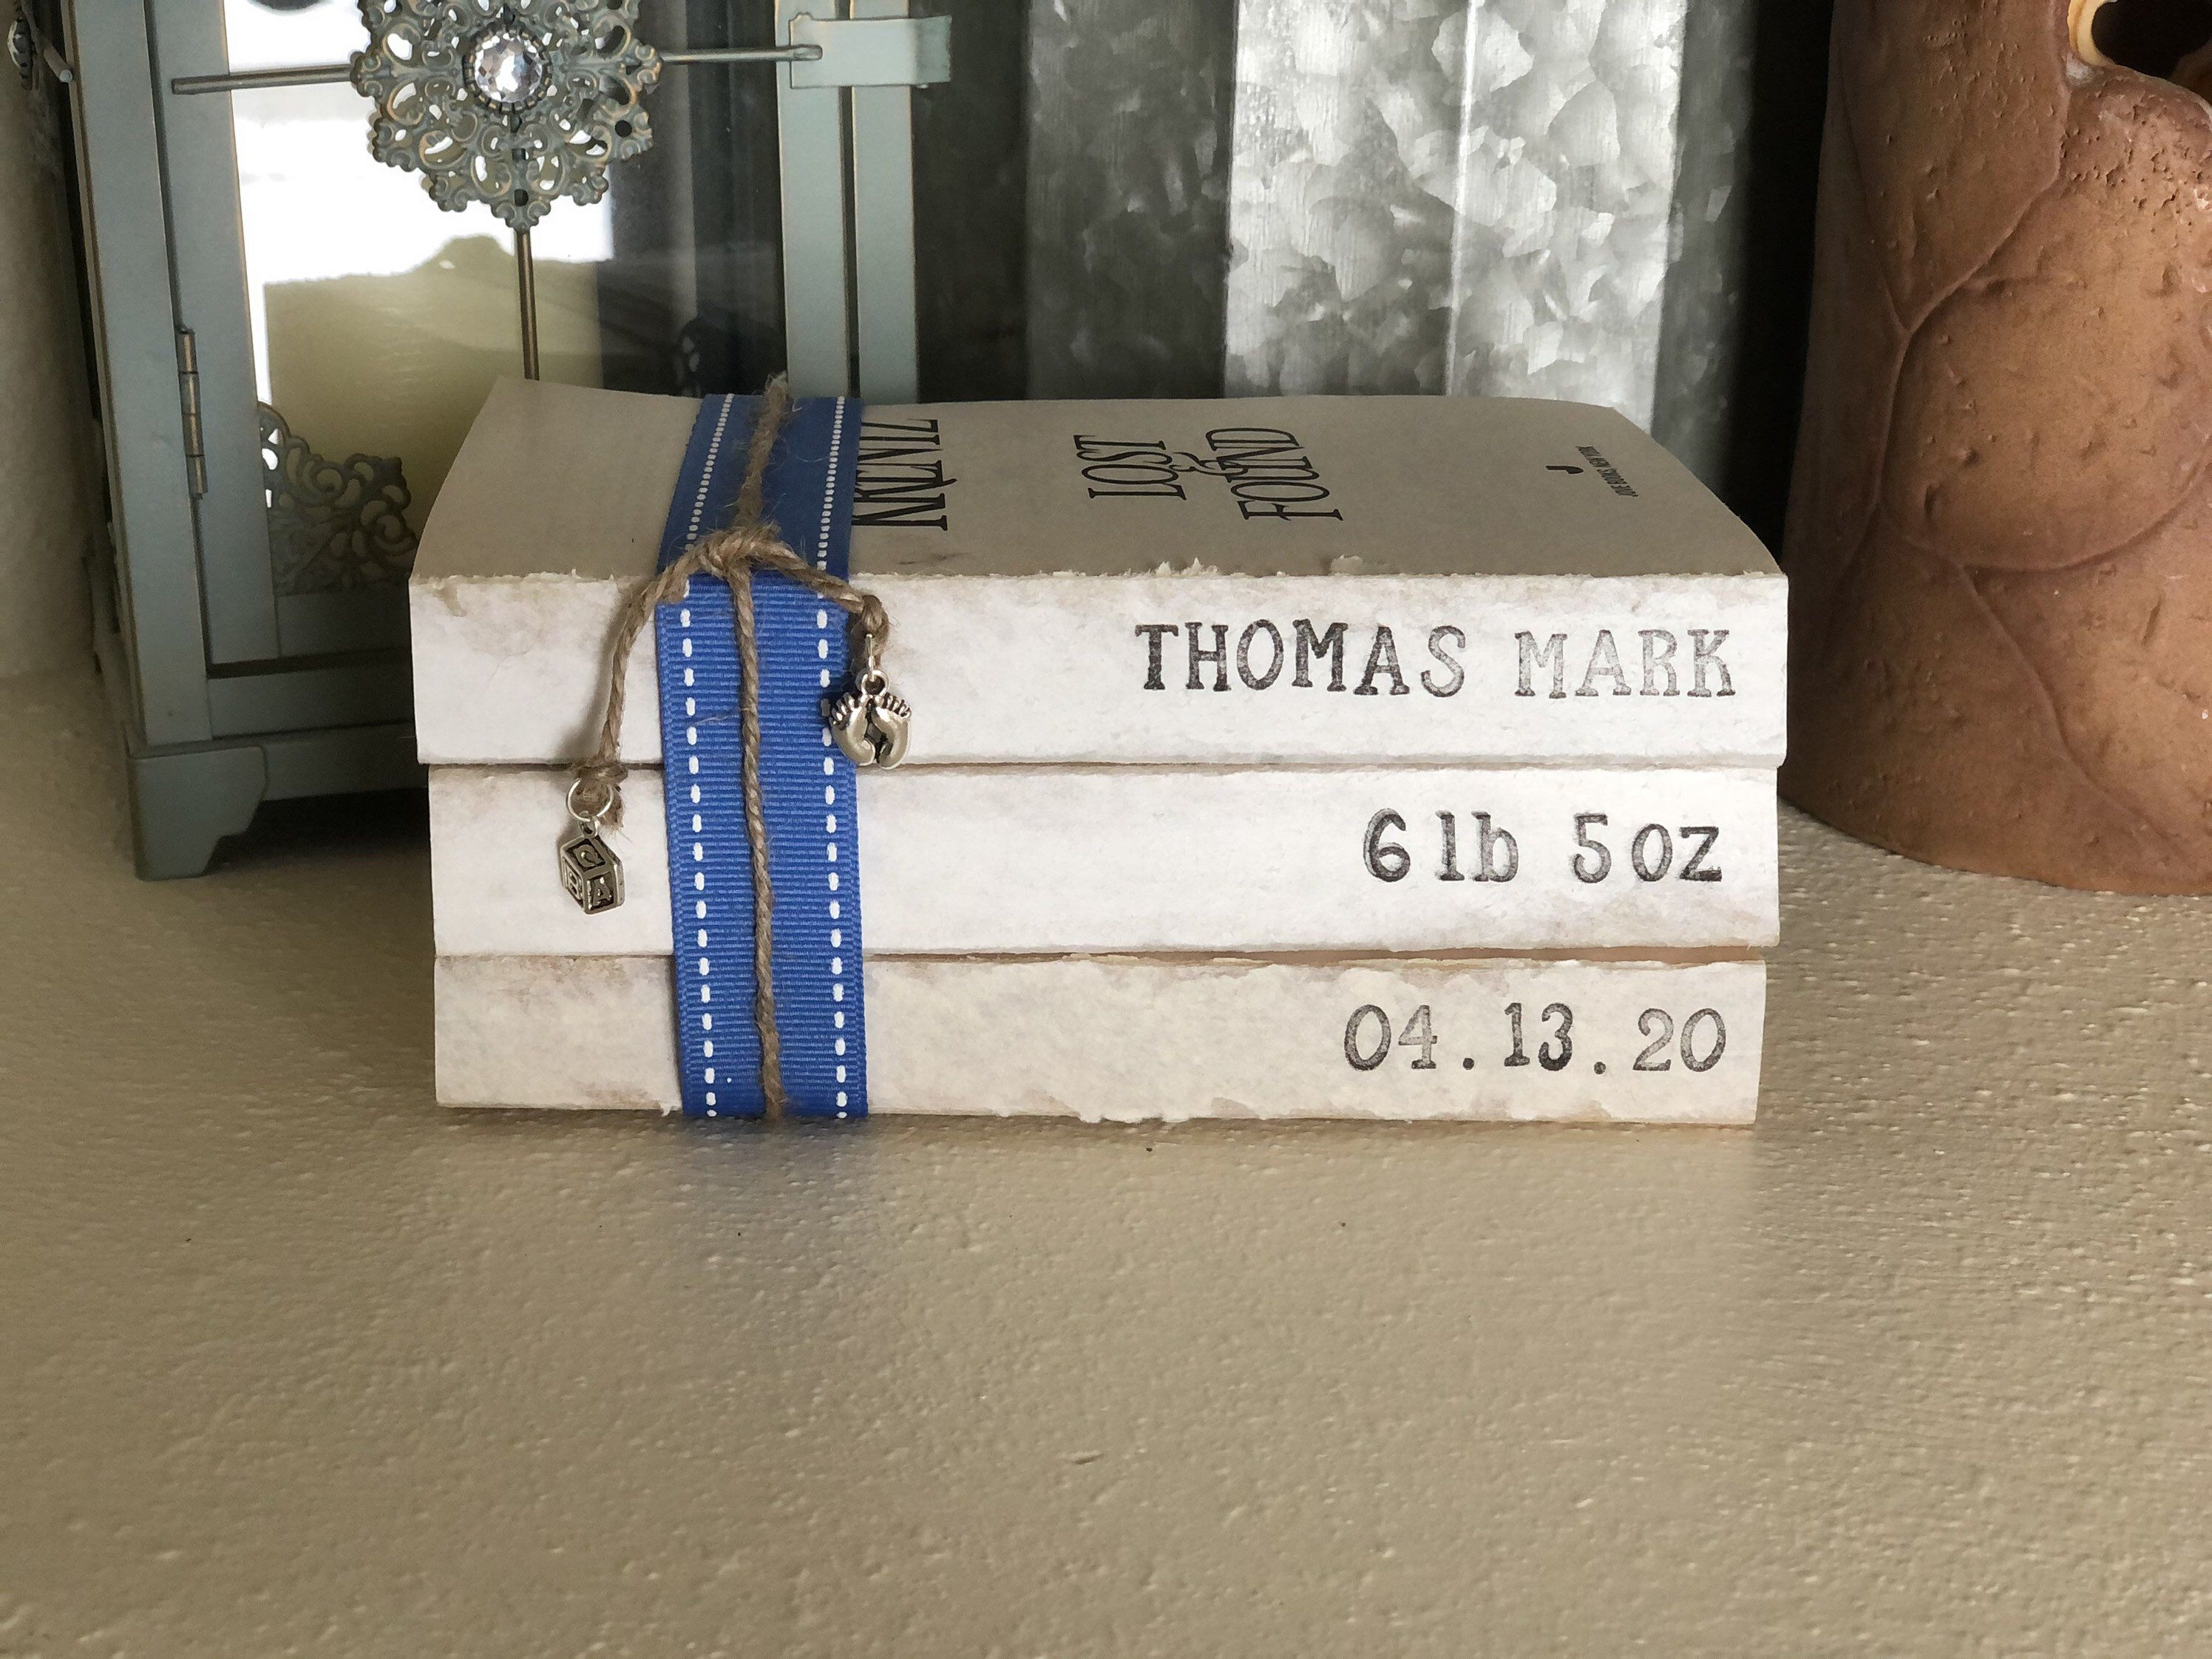 Baby Decorative Stamped Book Bundles Personalized, different ribbon colors and charms adder! $22 #nurserydecorpersonalized #farmhousebabydecor #vintagebarn_nd  #babybookstack